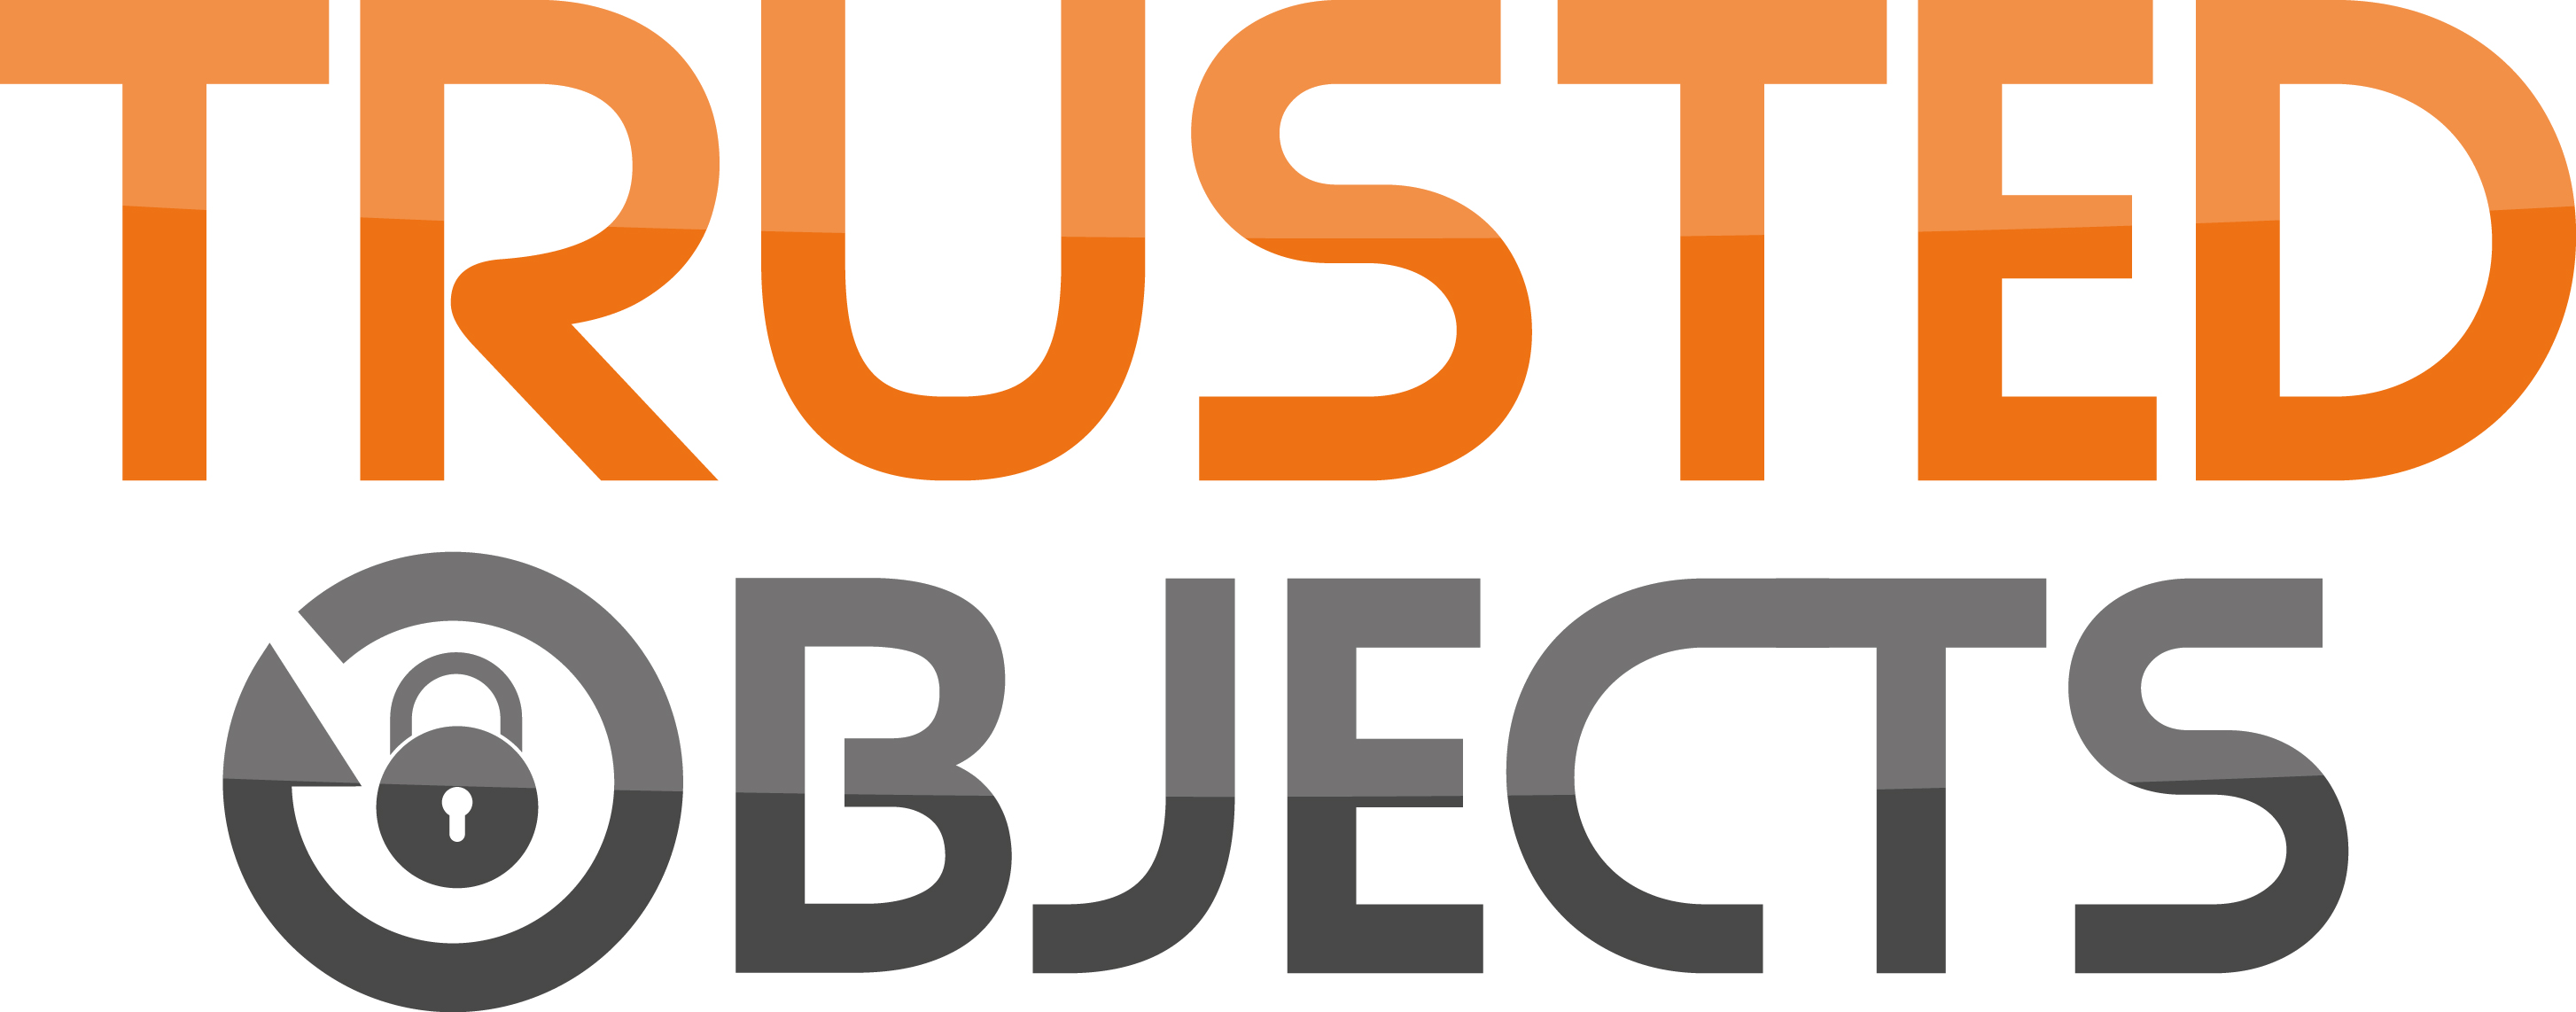 Logo TRUSTED OBJECTS